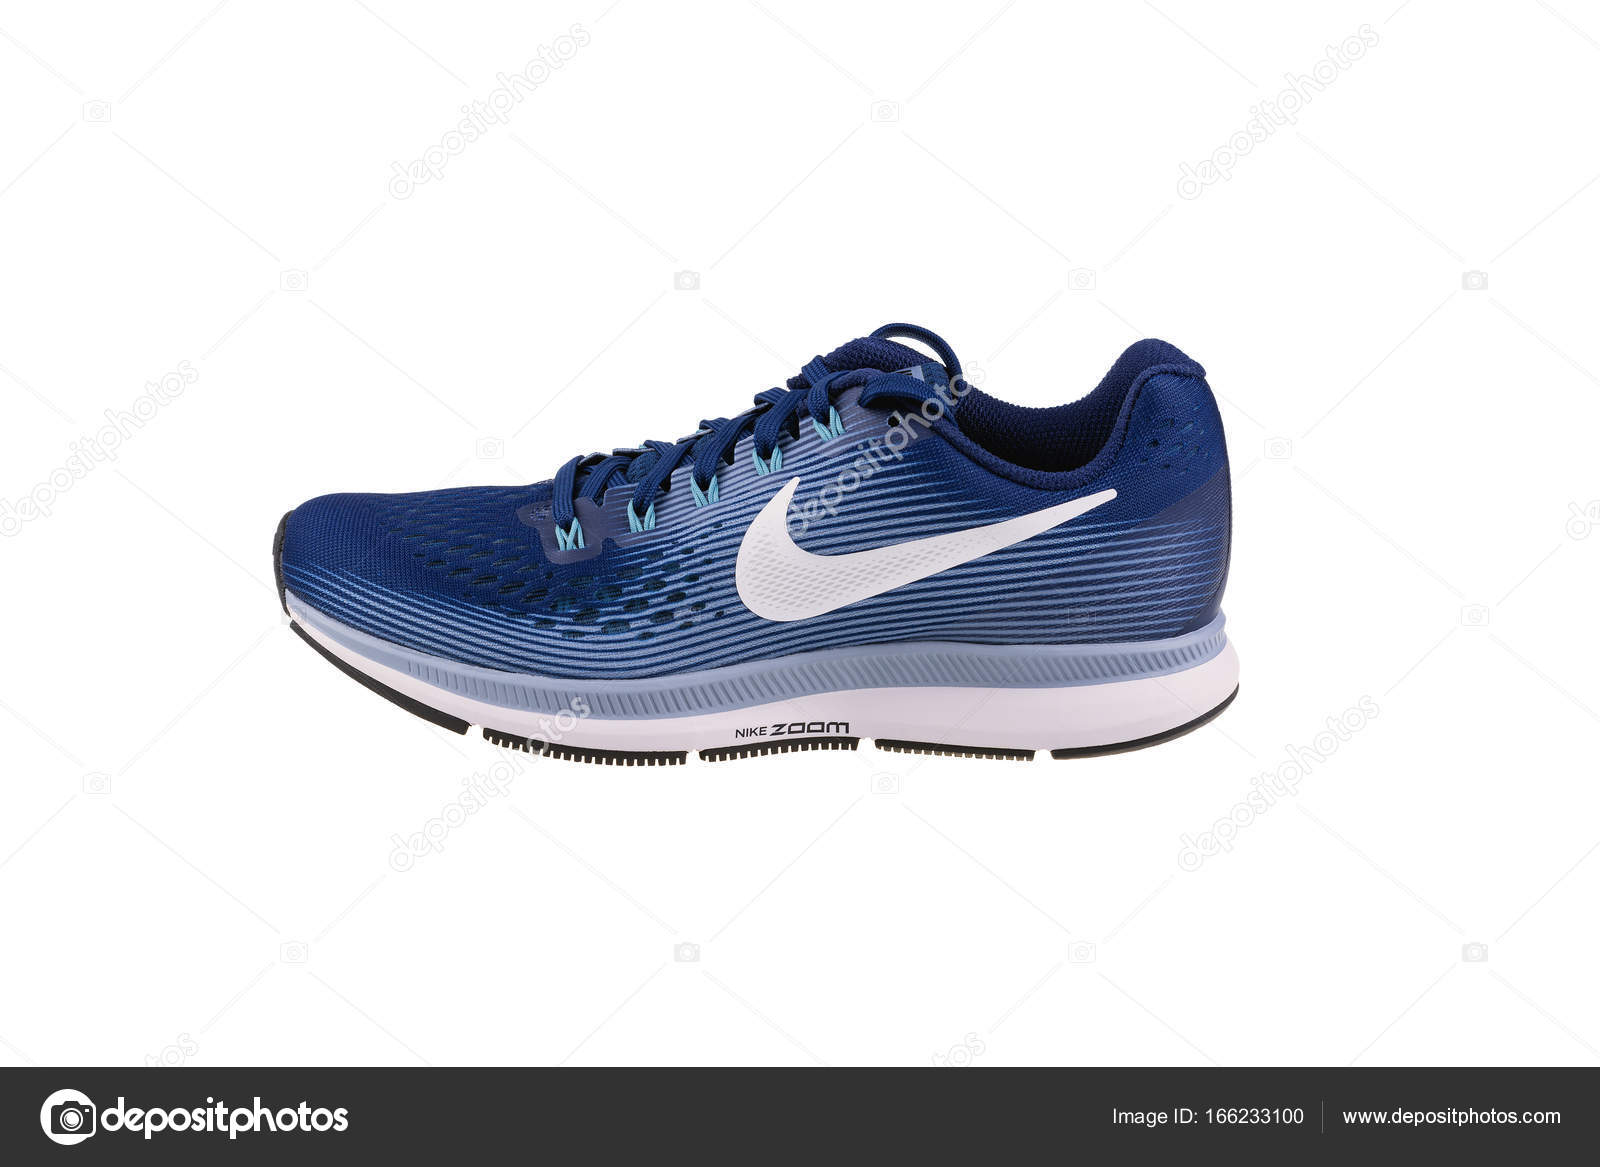 BURGAS, BULGARIA - SEPTEMBER 7, 2017: Nike Air Zoom Pegasus 34 Women's  Running Shoes in blue isolated on white background. Nike is a global sports  clothes ...